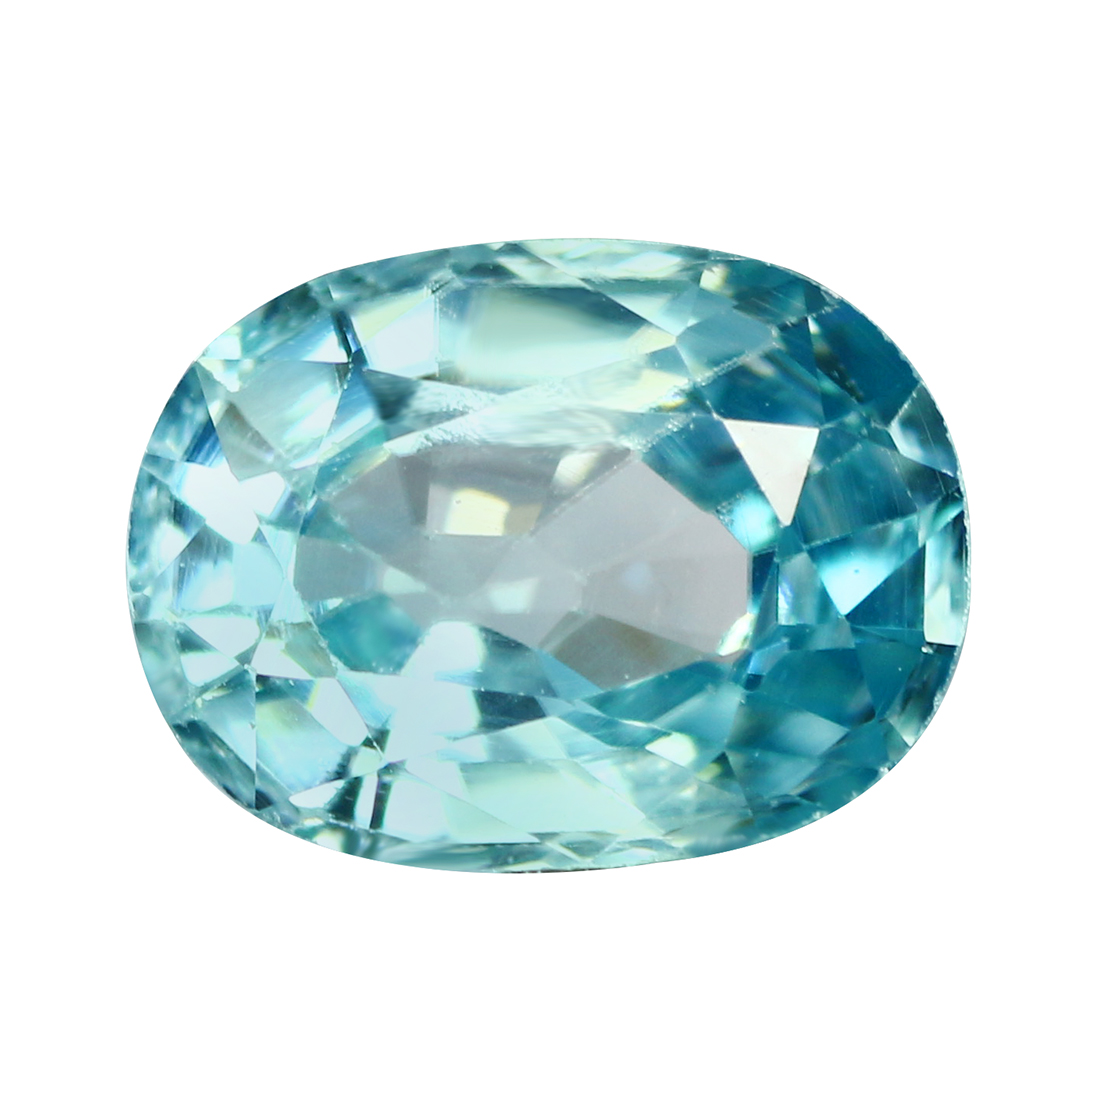 7.12 CT AAA Natural Blue Zircon Diamonds Octagon Cut 11X9MM VVS Loose Gemstones